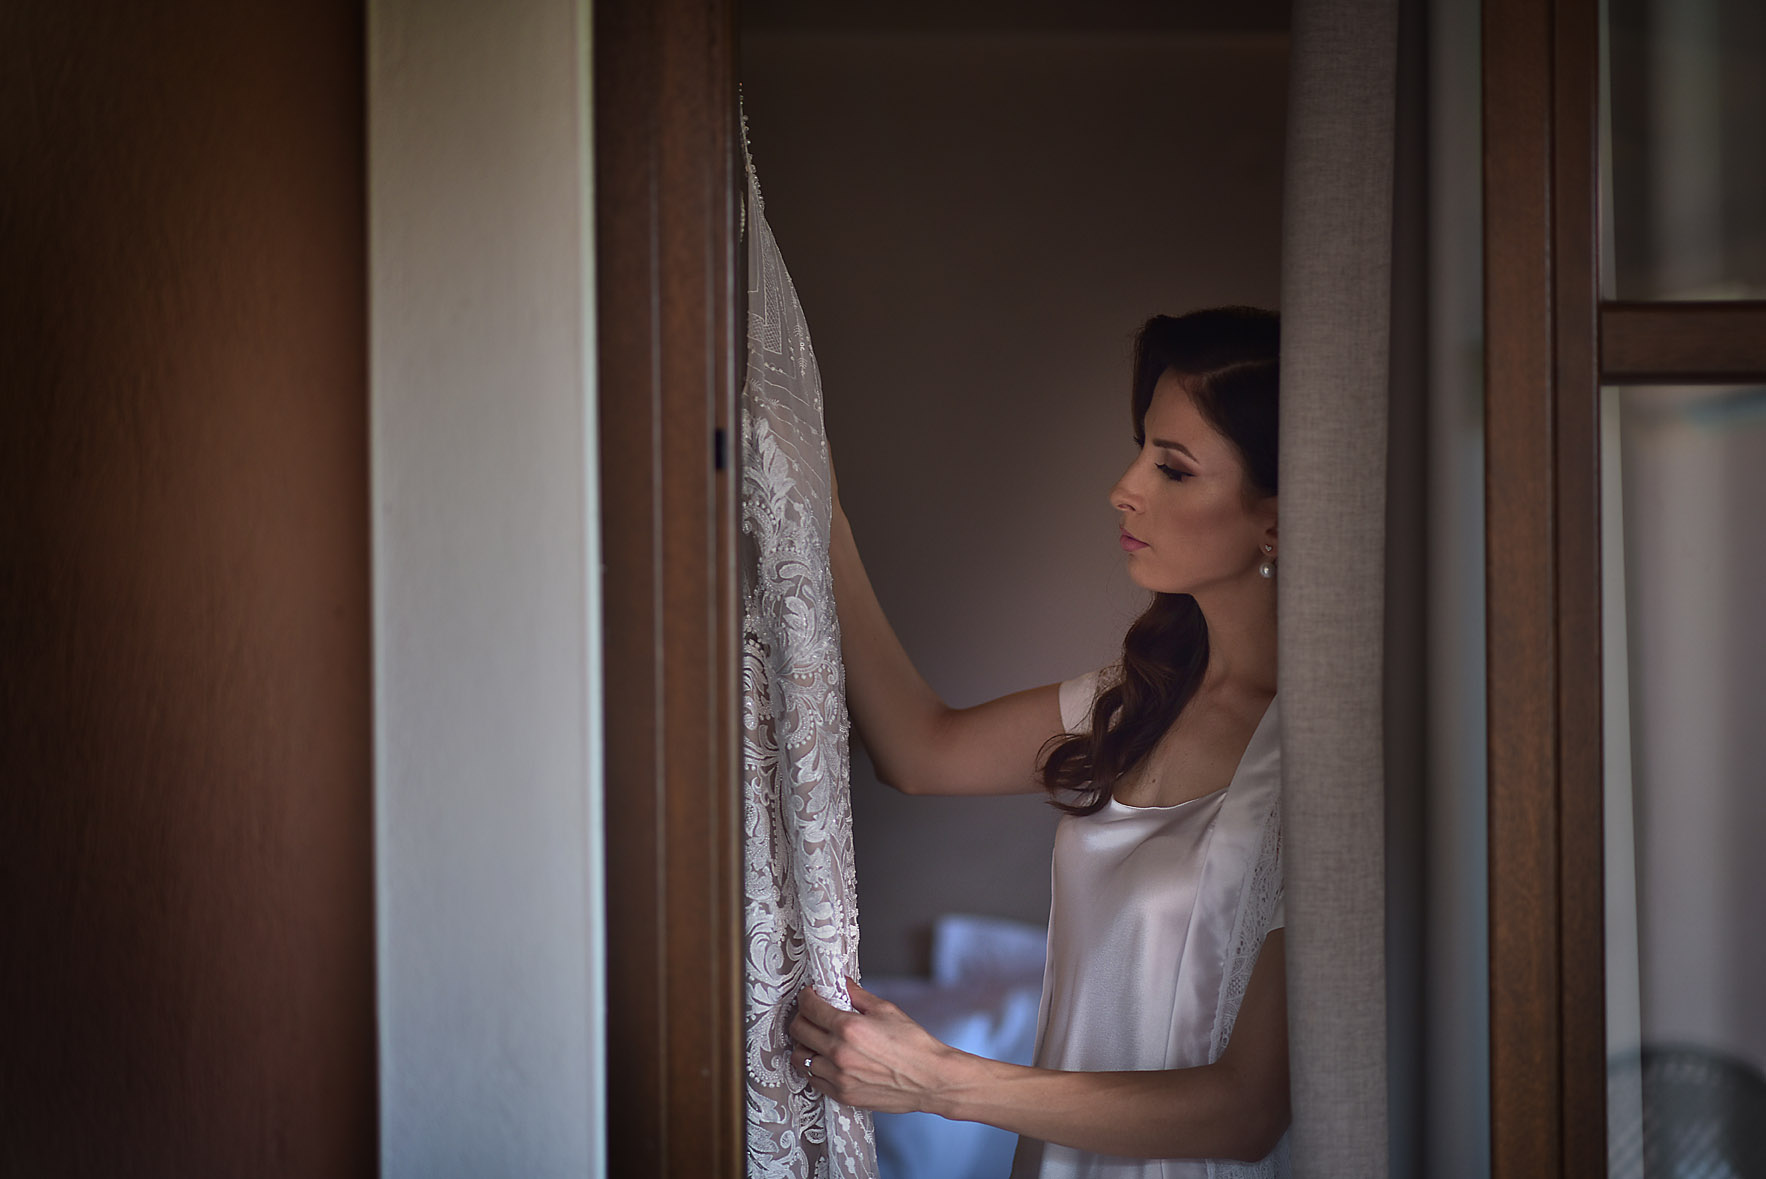 bride-dress-preparation-limni-plastira-hotel-kazarma-wedding-karditsa-04